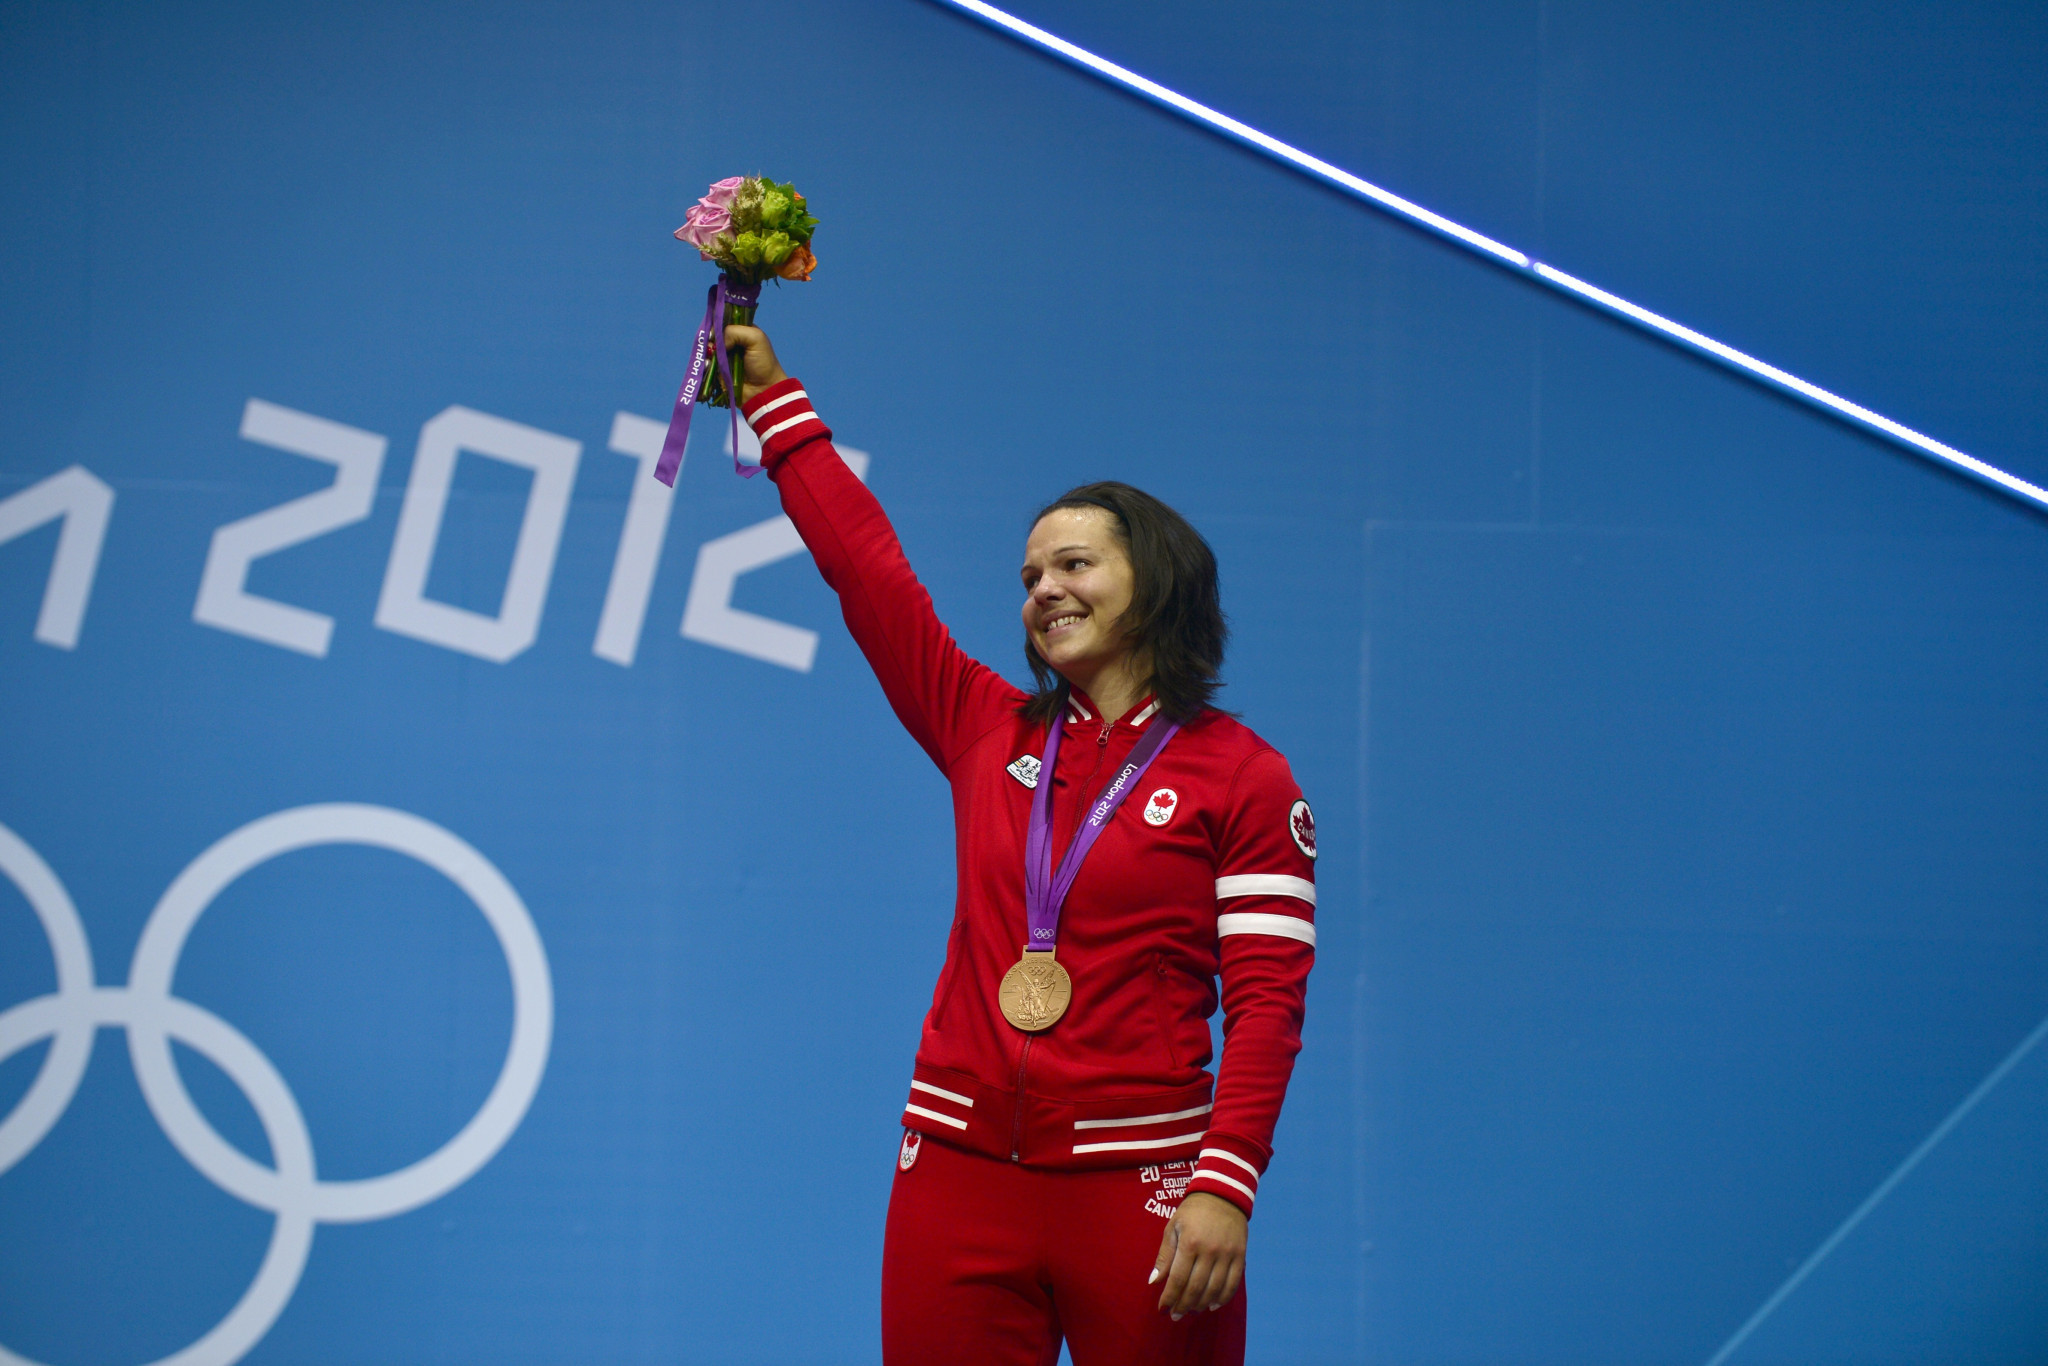 Christine Girard with her bronze medal at the London 2012 Olympics, which was subsequently upgraded to gold ©Getty Images